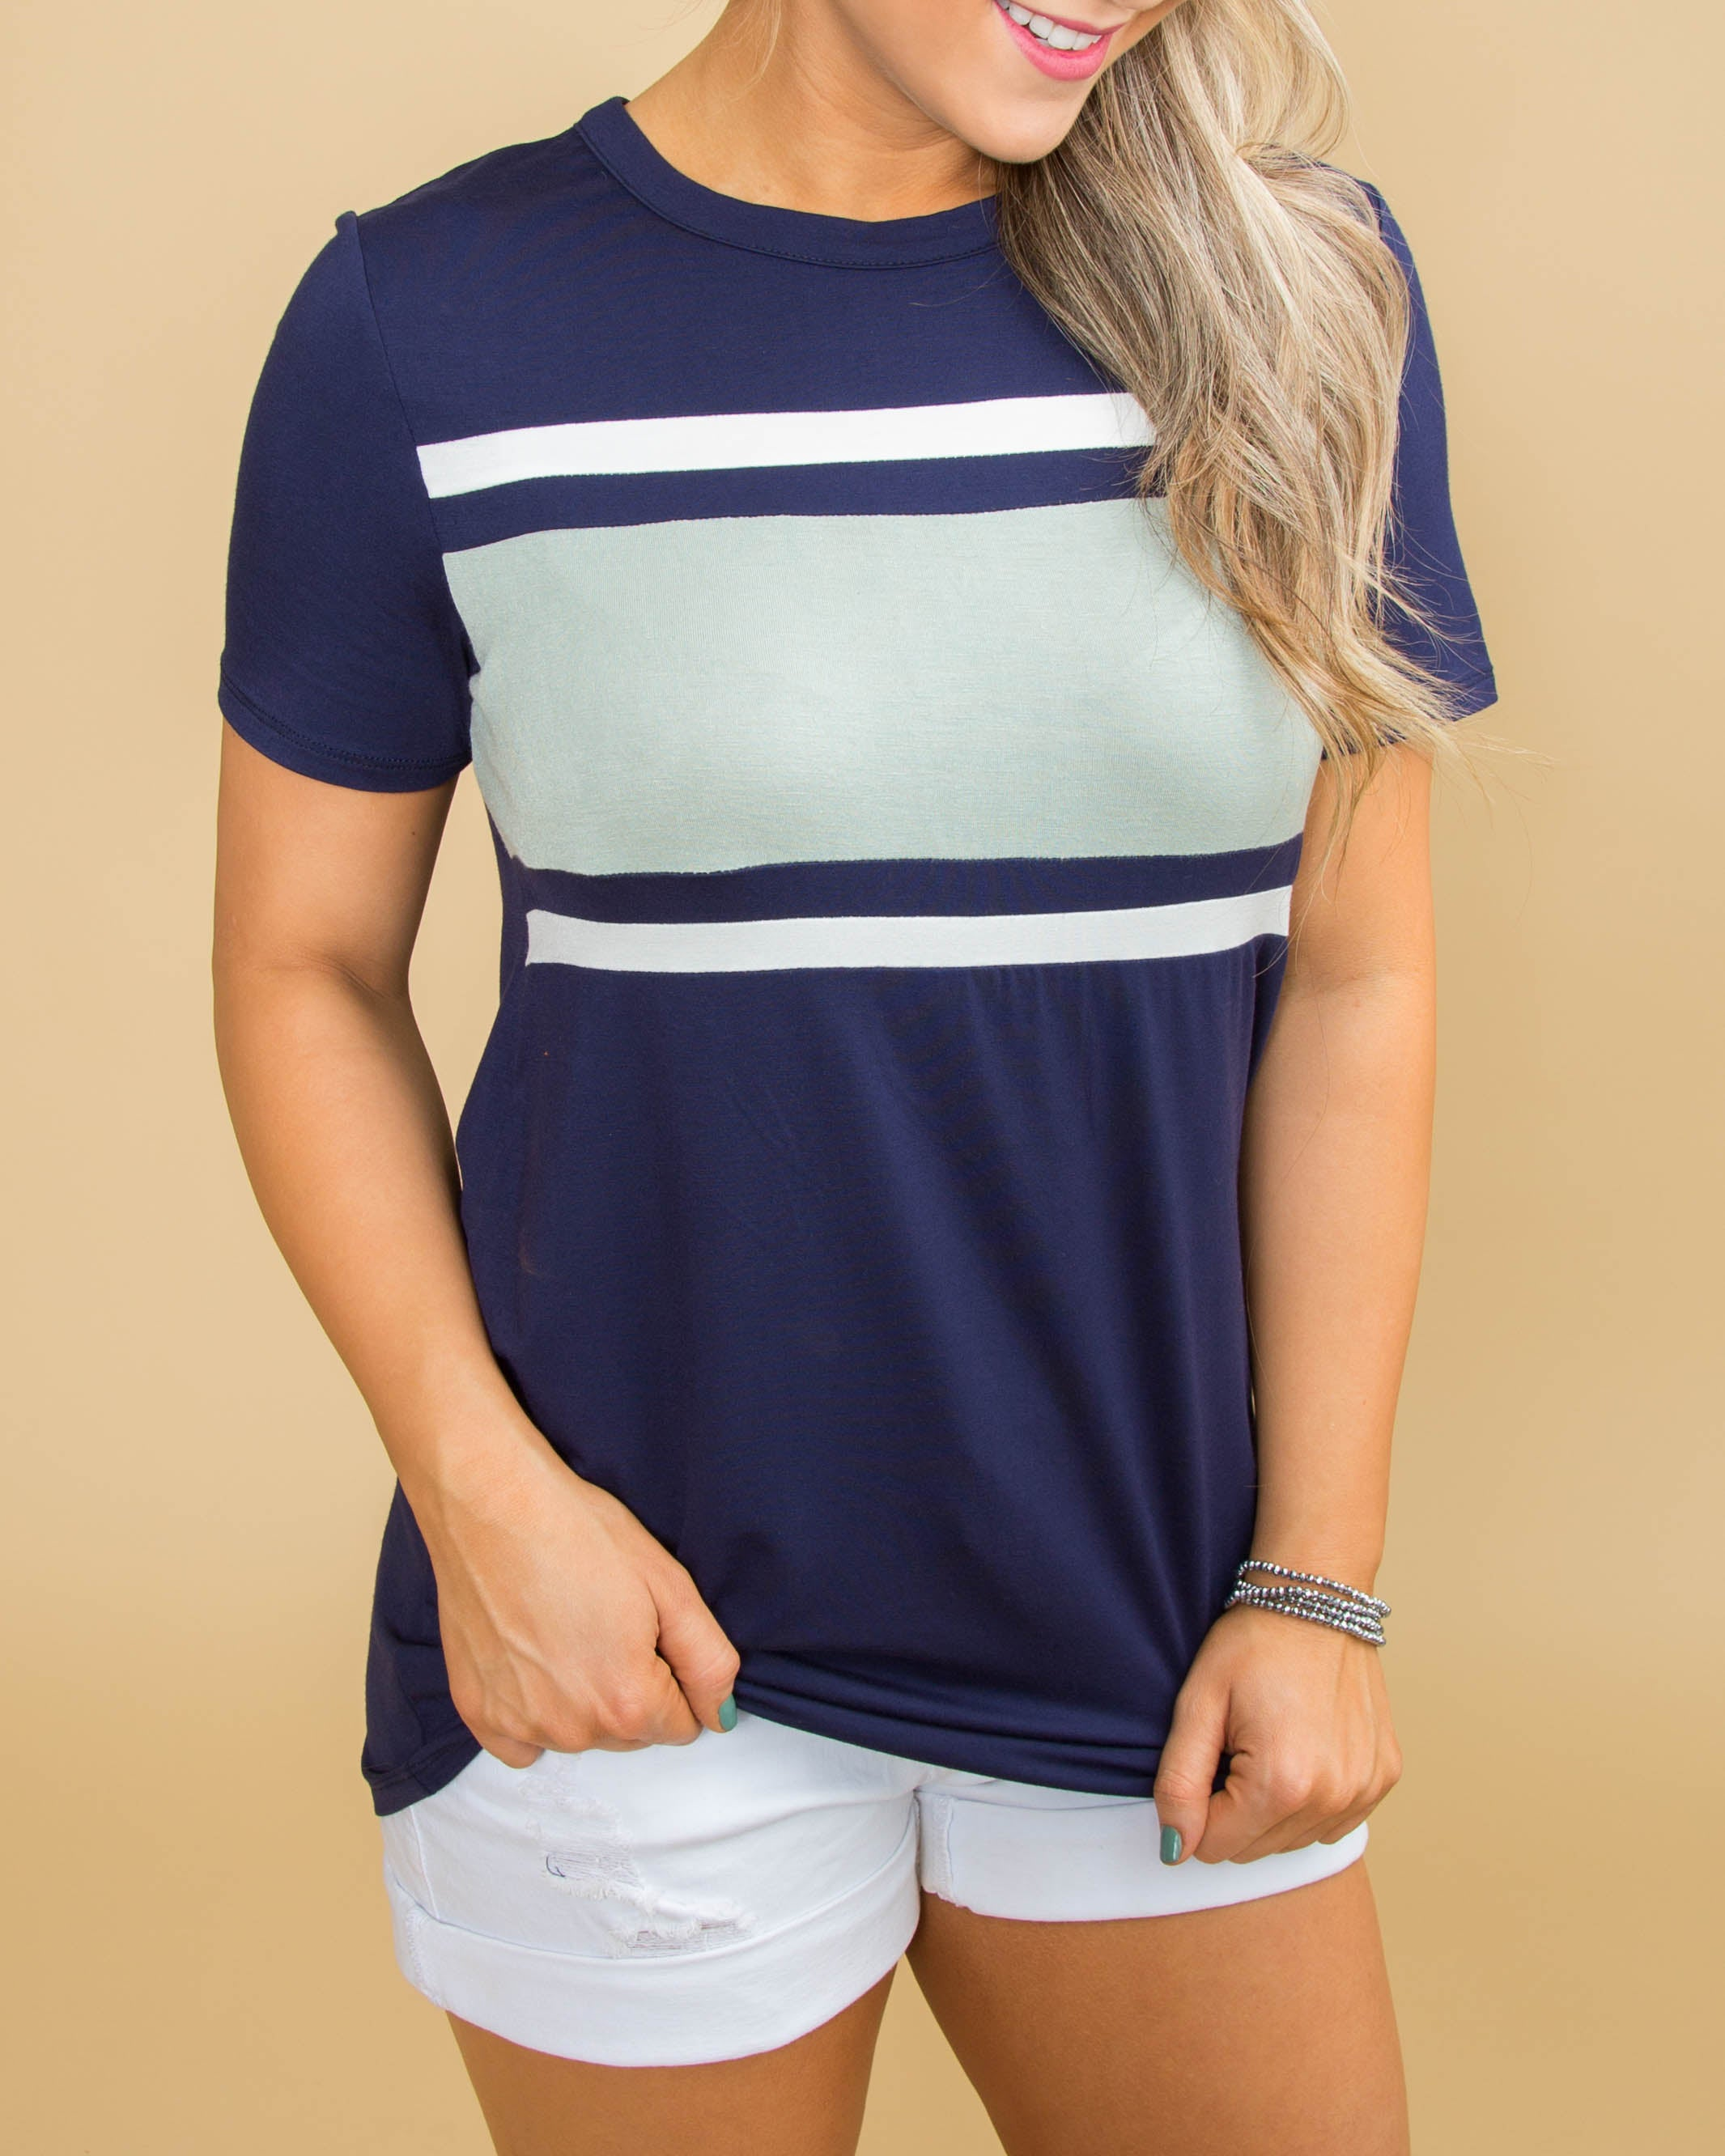 What I Love Color-Block Tee - Navy